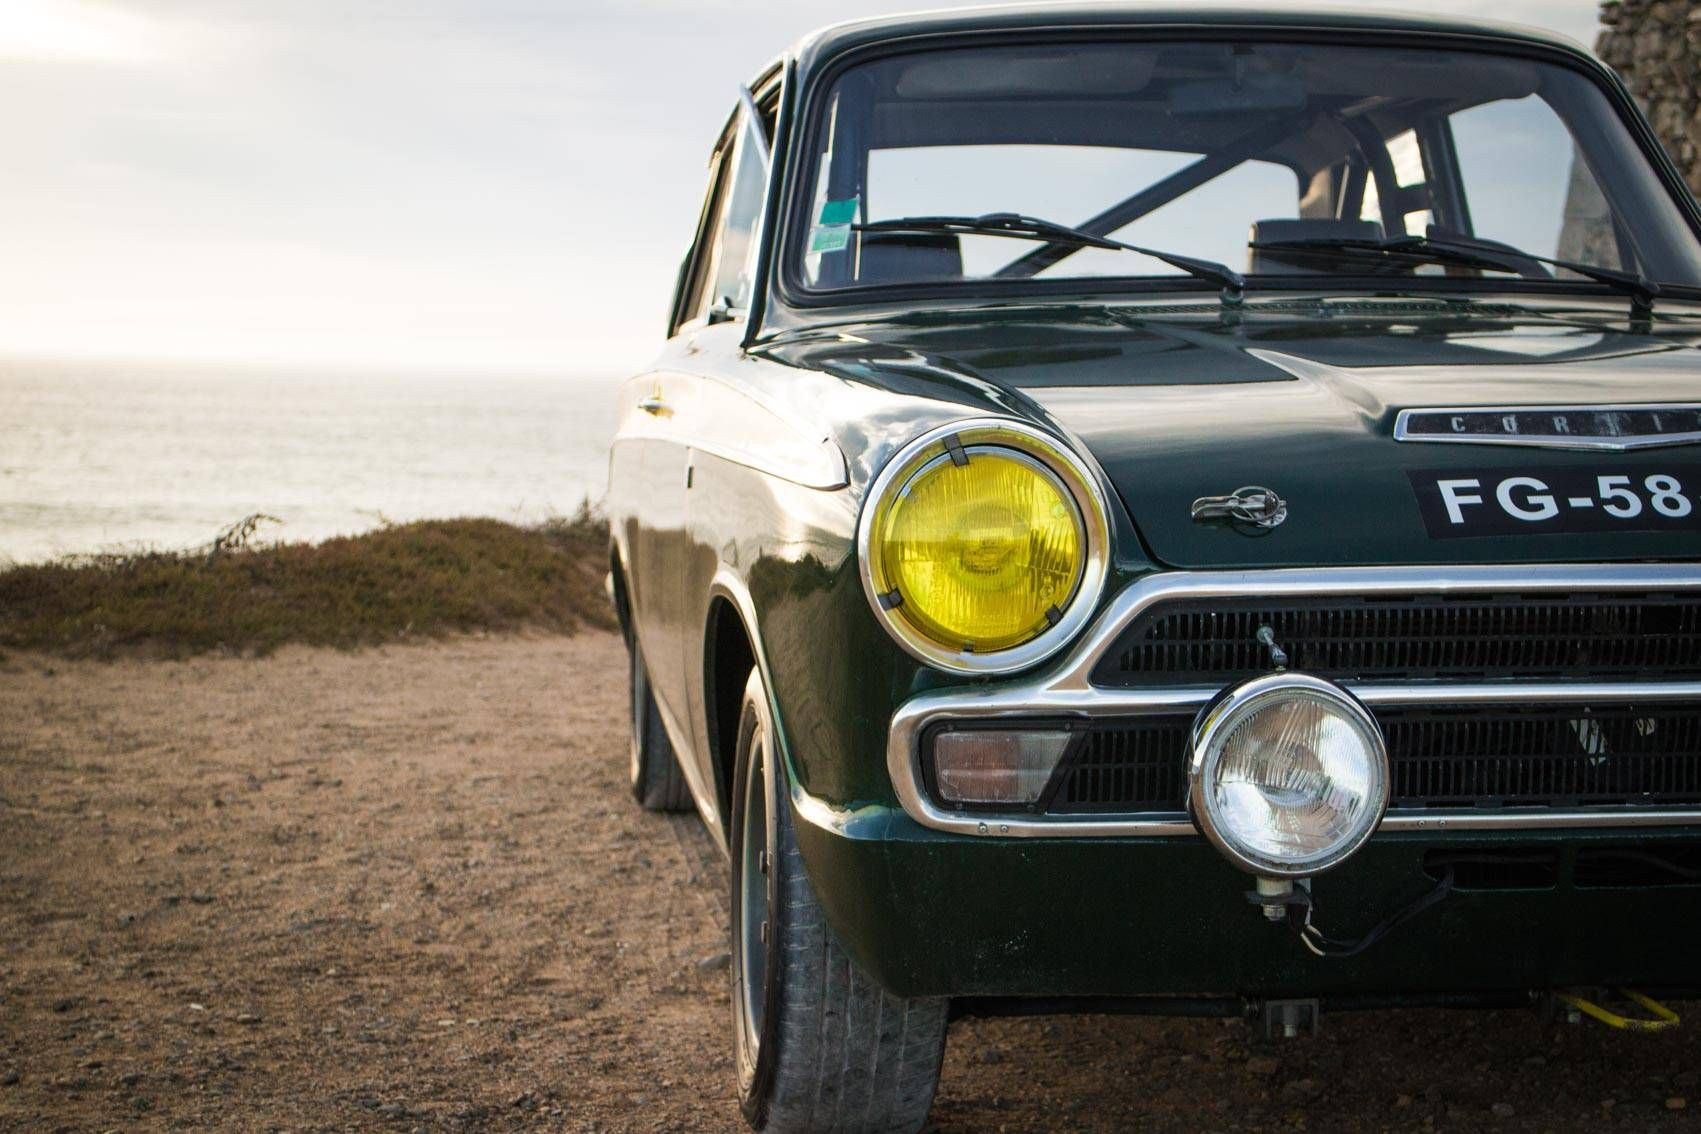 Ford Lotus Cortina MkI - | For Sale! | Pinterest | Ford, Lotus and ...